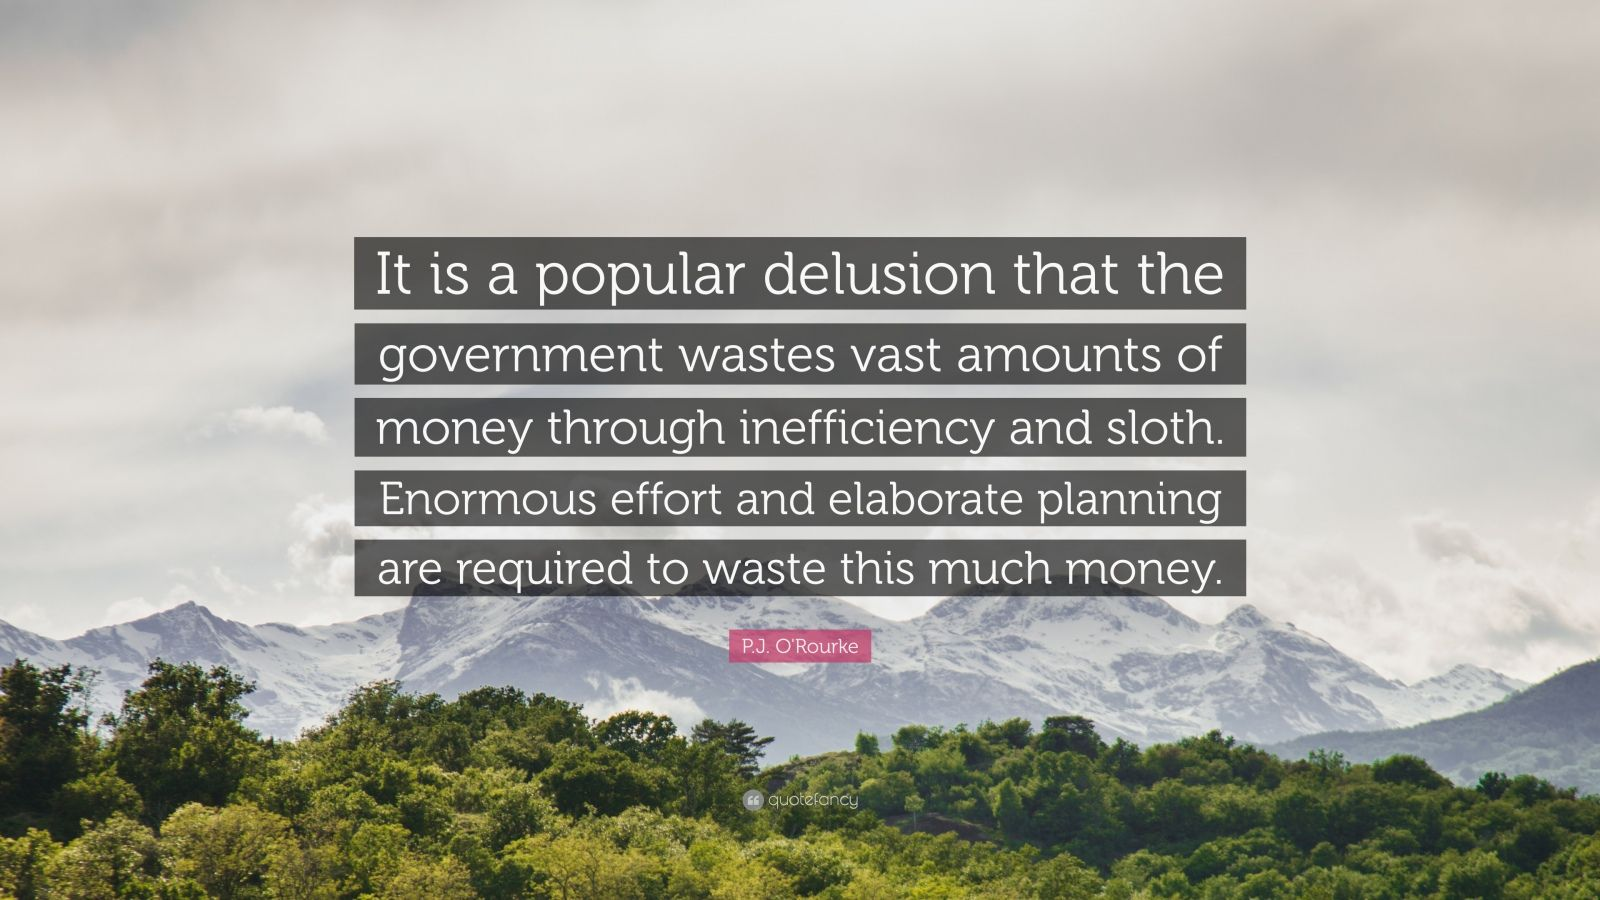 """P.J. O'Rourke Quote: """"It is a popular delusion that the government wastes vast amounts of money through inefficiency and sloth. Enormous effort and elaborate planning are required to waste this much money."""""""